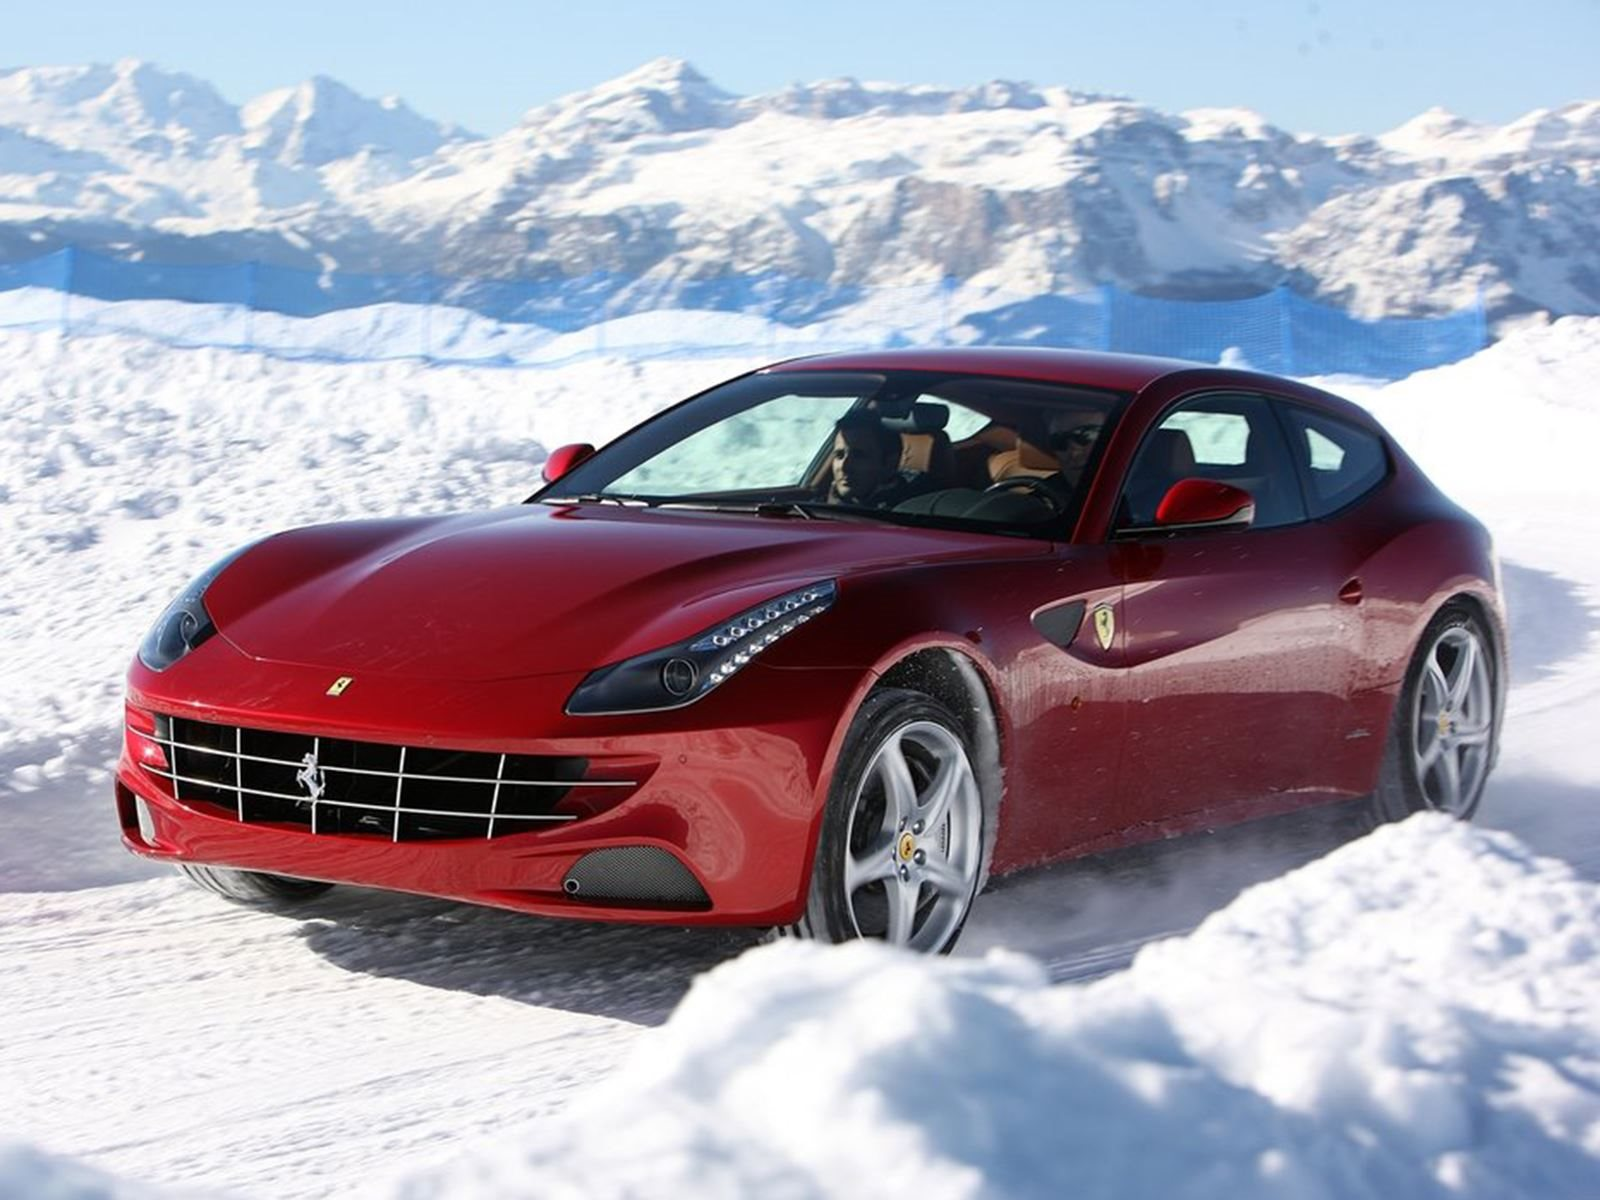 The Ferrari Ff Is Now One Of The Best Value Ferraris On The Market Carbuzz